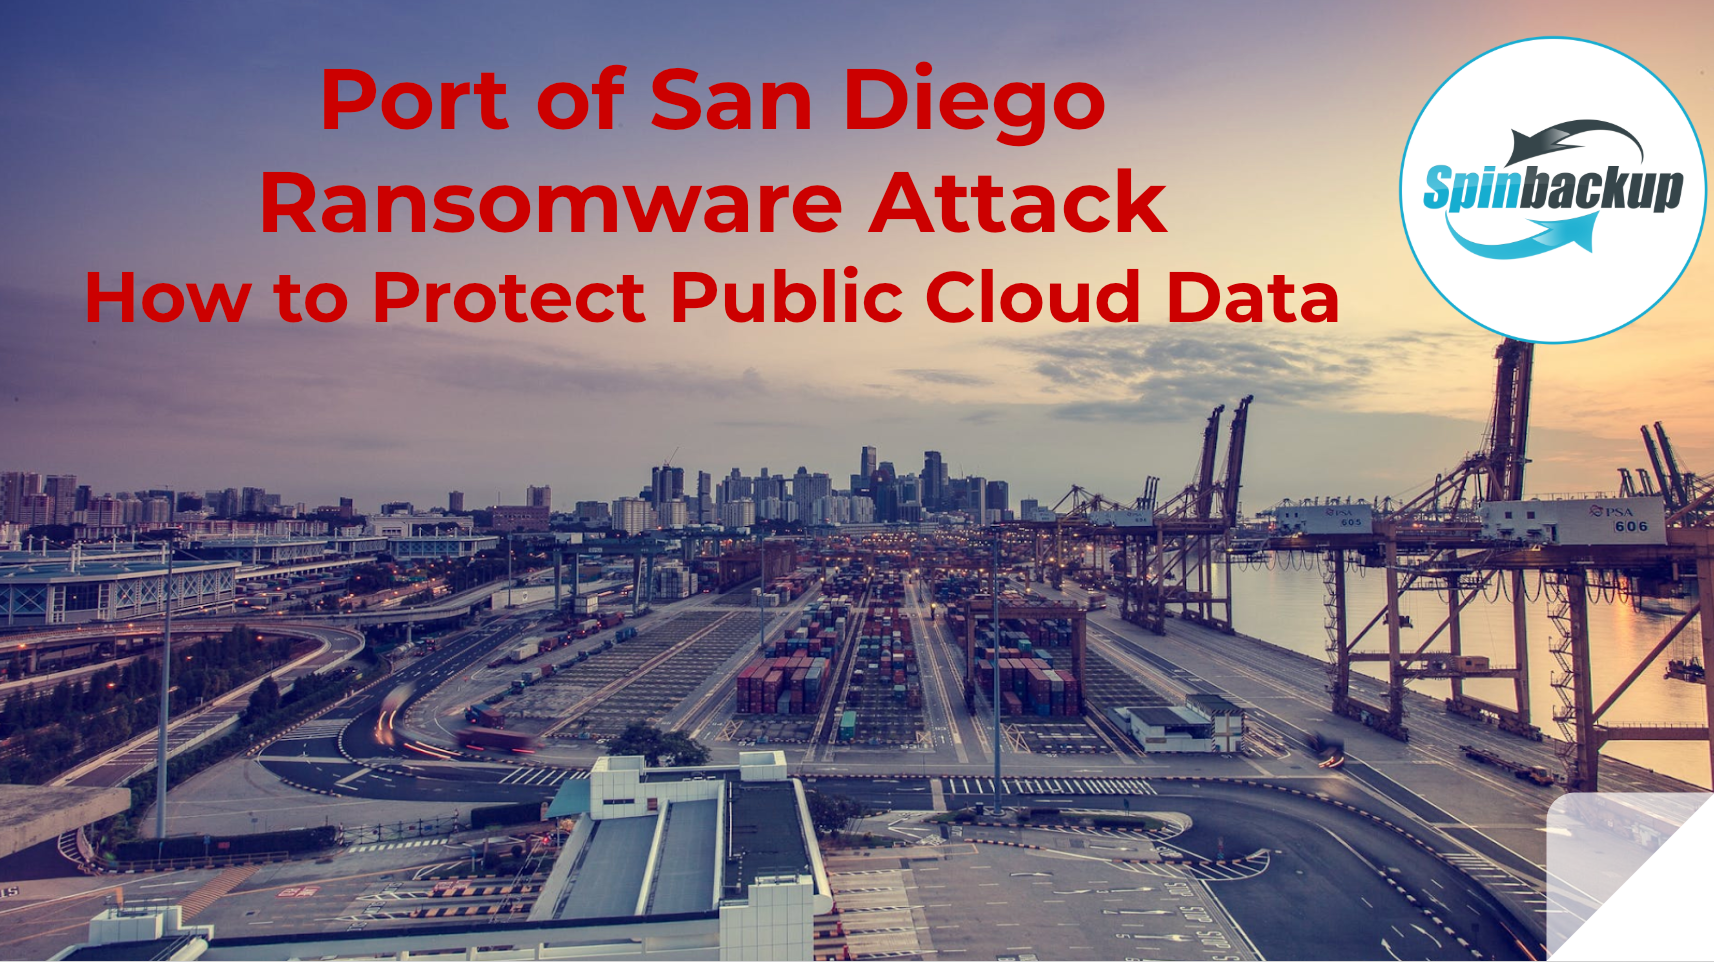 Port of San Diego Ransomware Attack. How to Protect Public Cloud Data